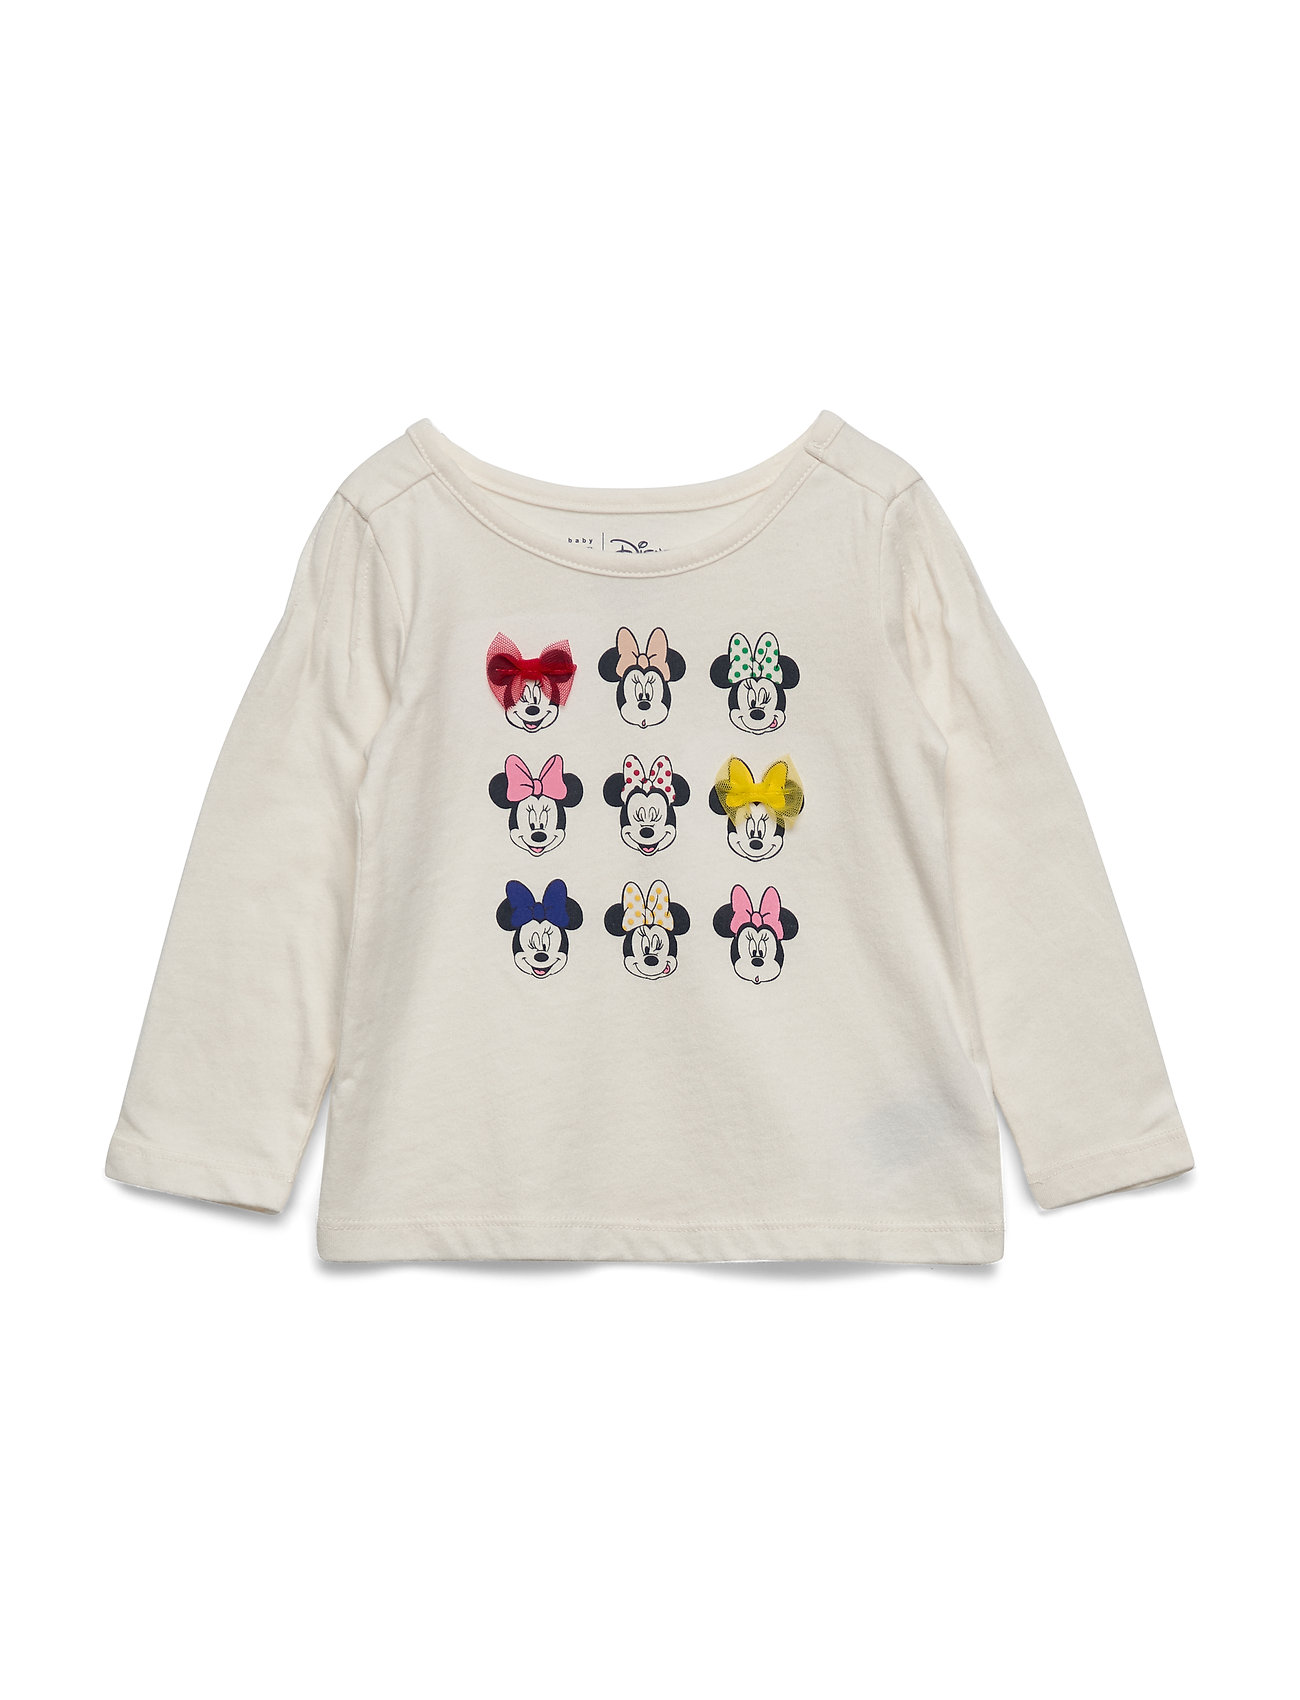 GAP babyGap | Disney Minnie Mouse T-Shirt - IVORY FROST